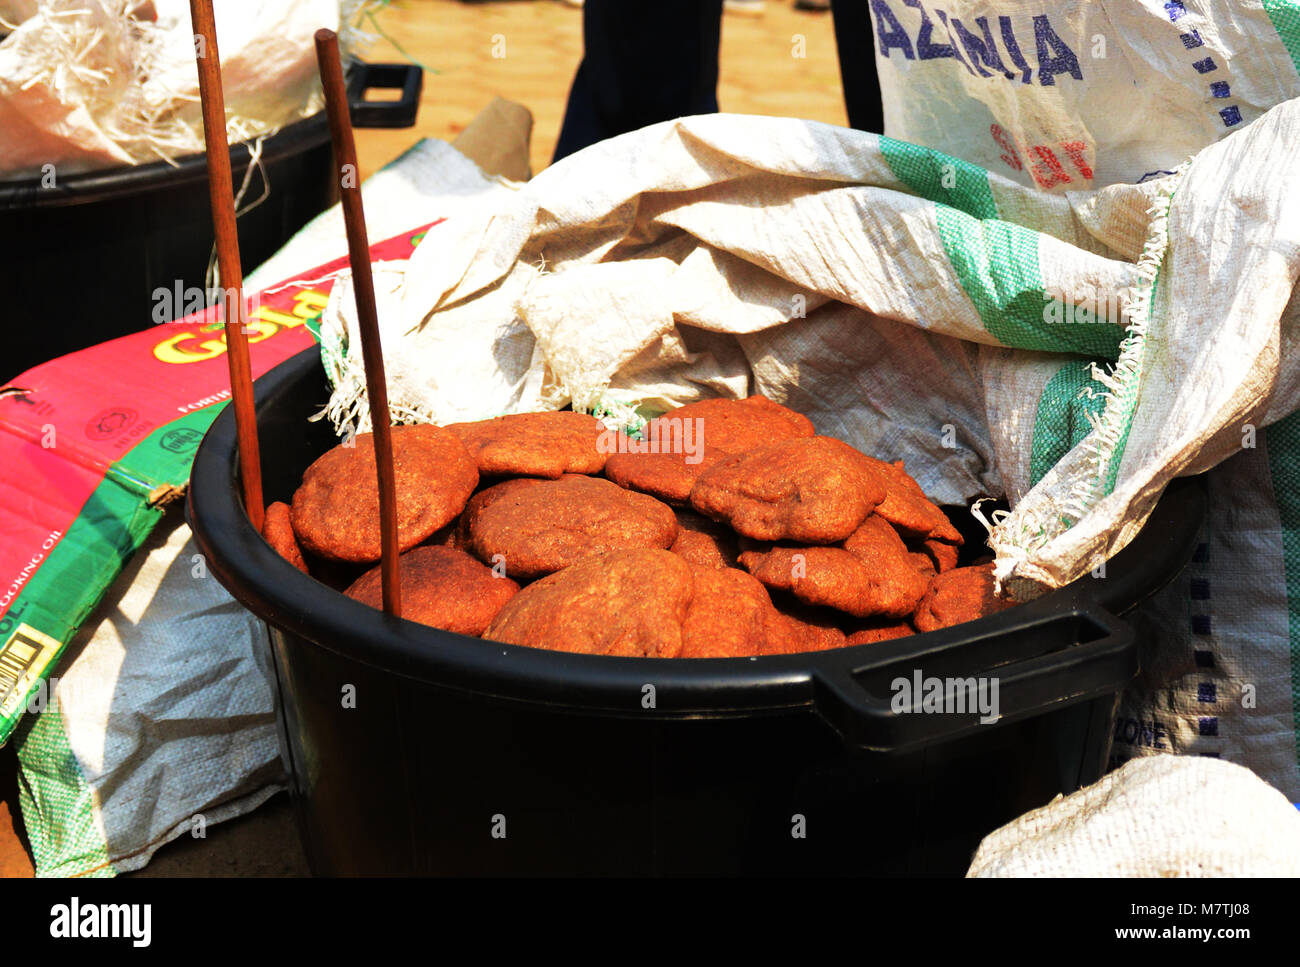 Mandazi Is A Popular Snack In Rwanda And Central Africa Stock Photo Alamy